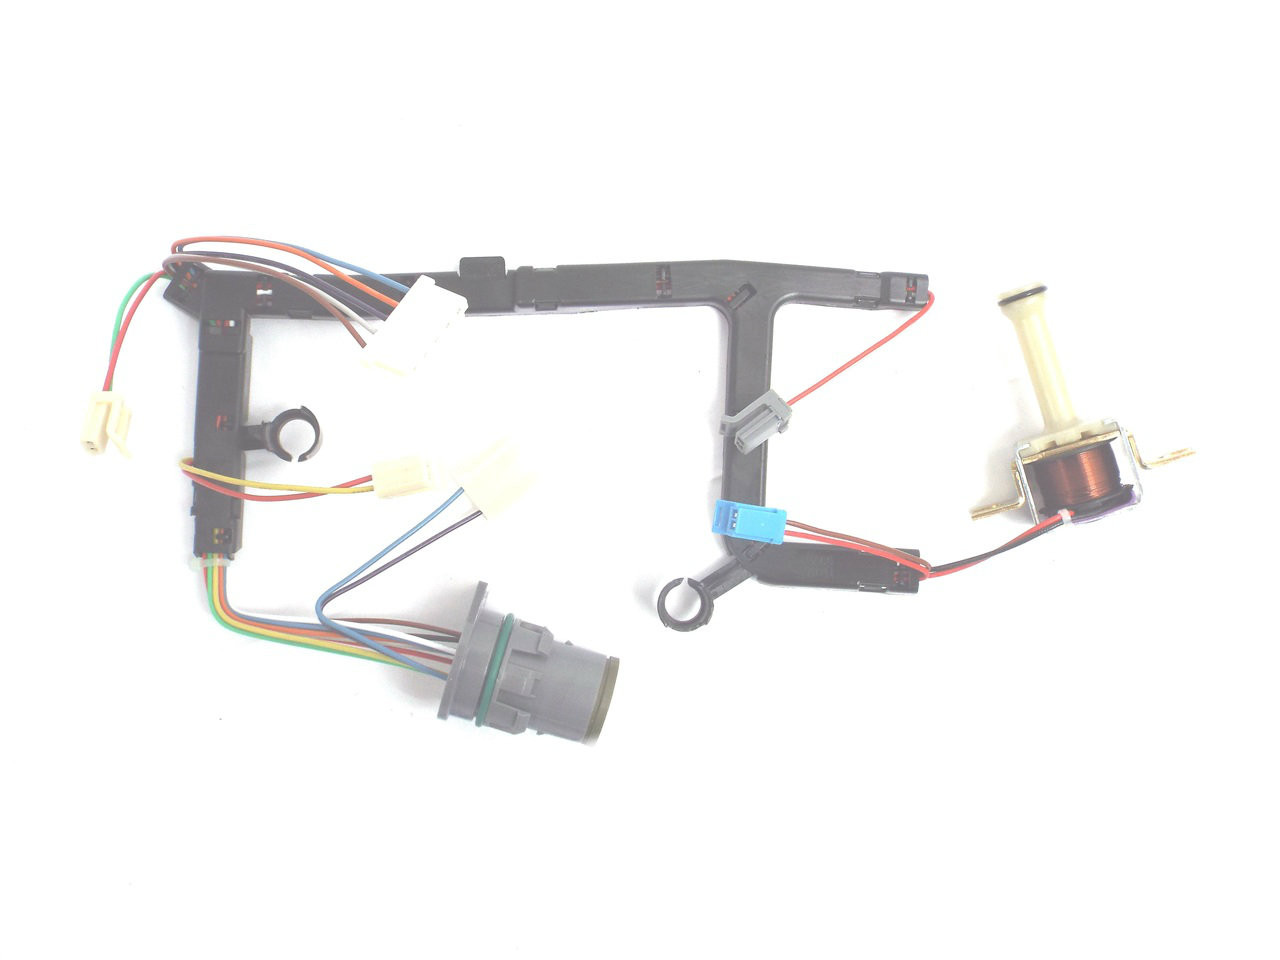 medium resolution of gm 4l60e transmission wiring harness from global transmission parts 1997 2003